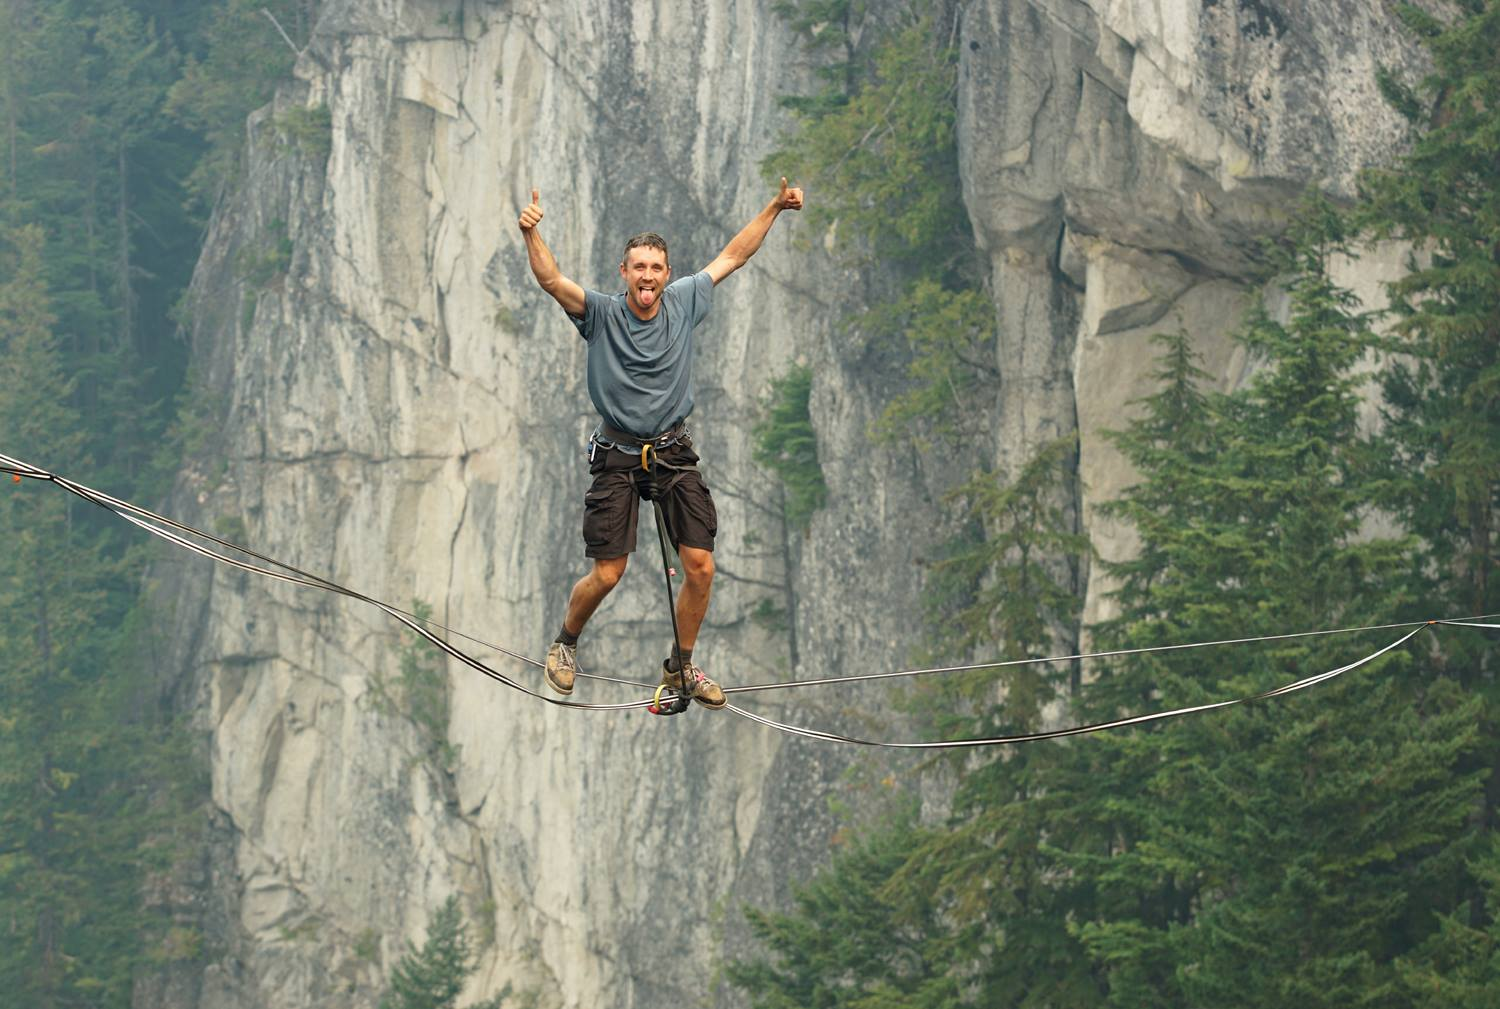 Brent Plumely on a highline rope